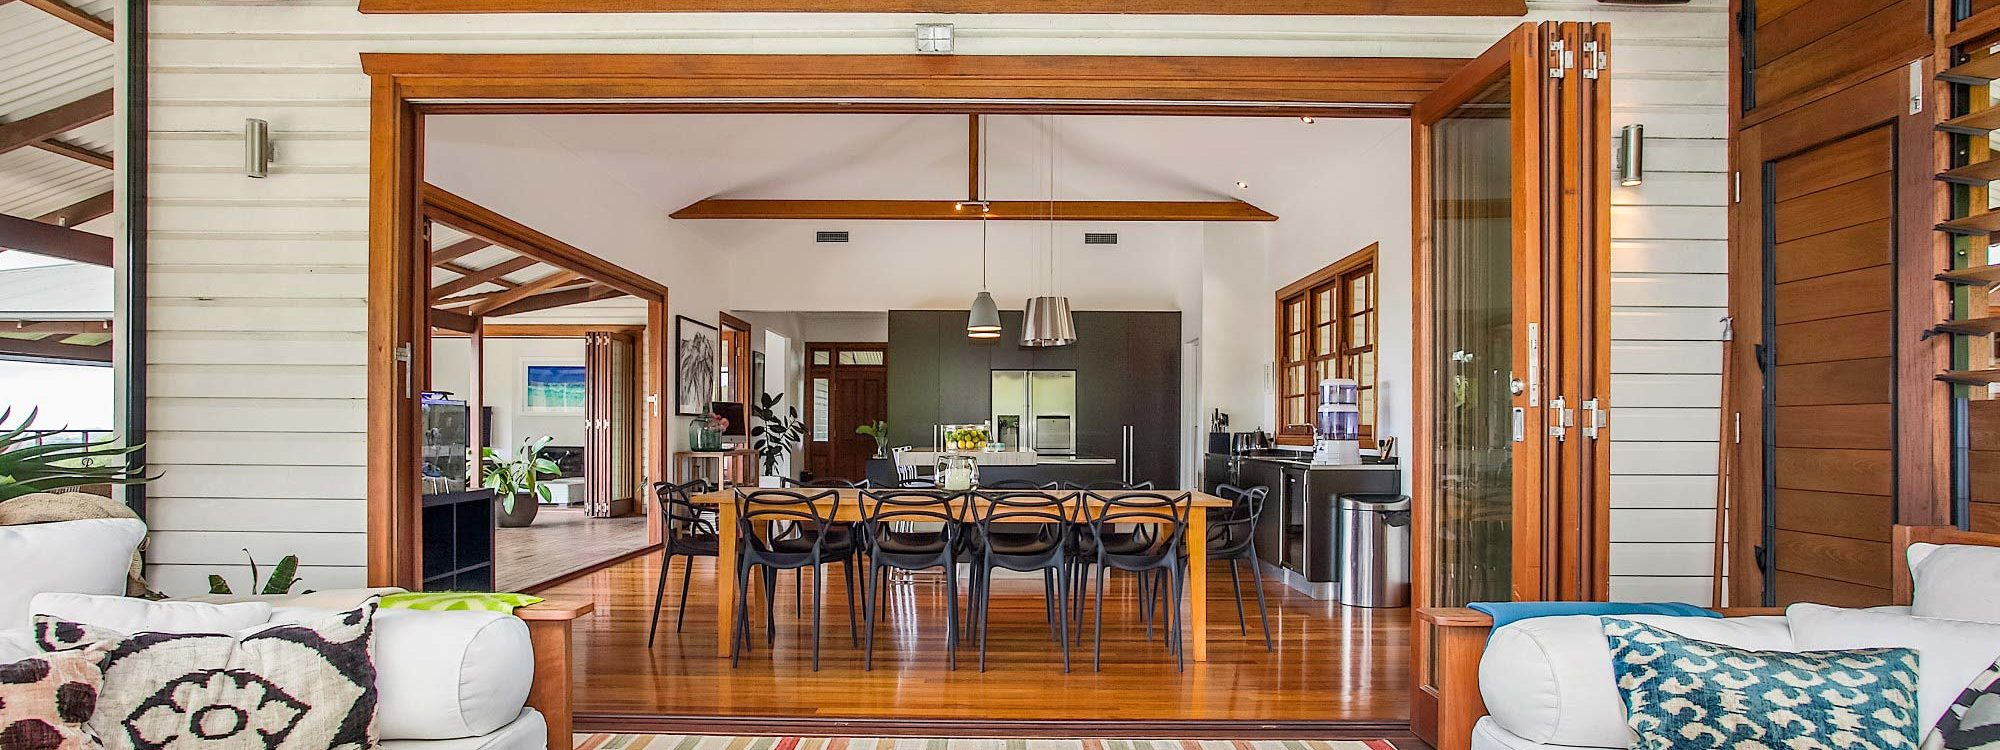 Callistemon View - Byron Bay Hinterland - Federal - deck area and inside